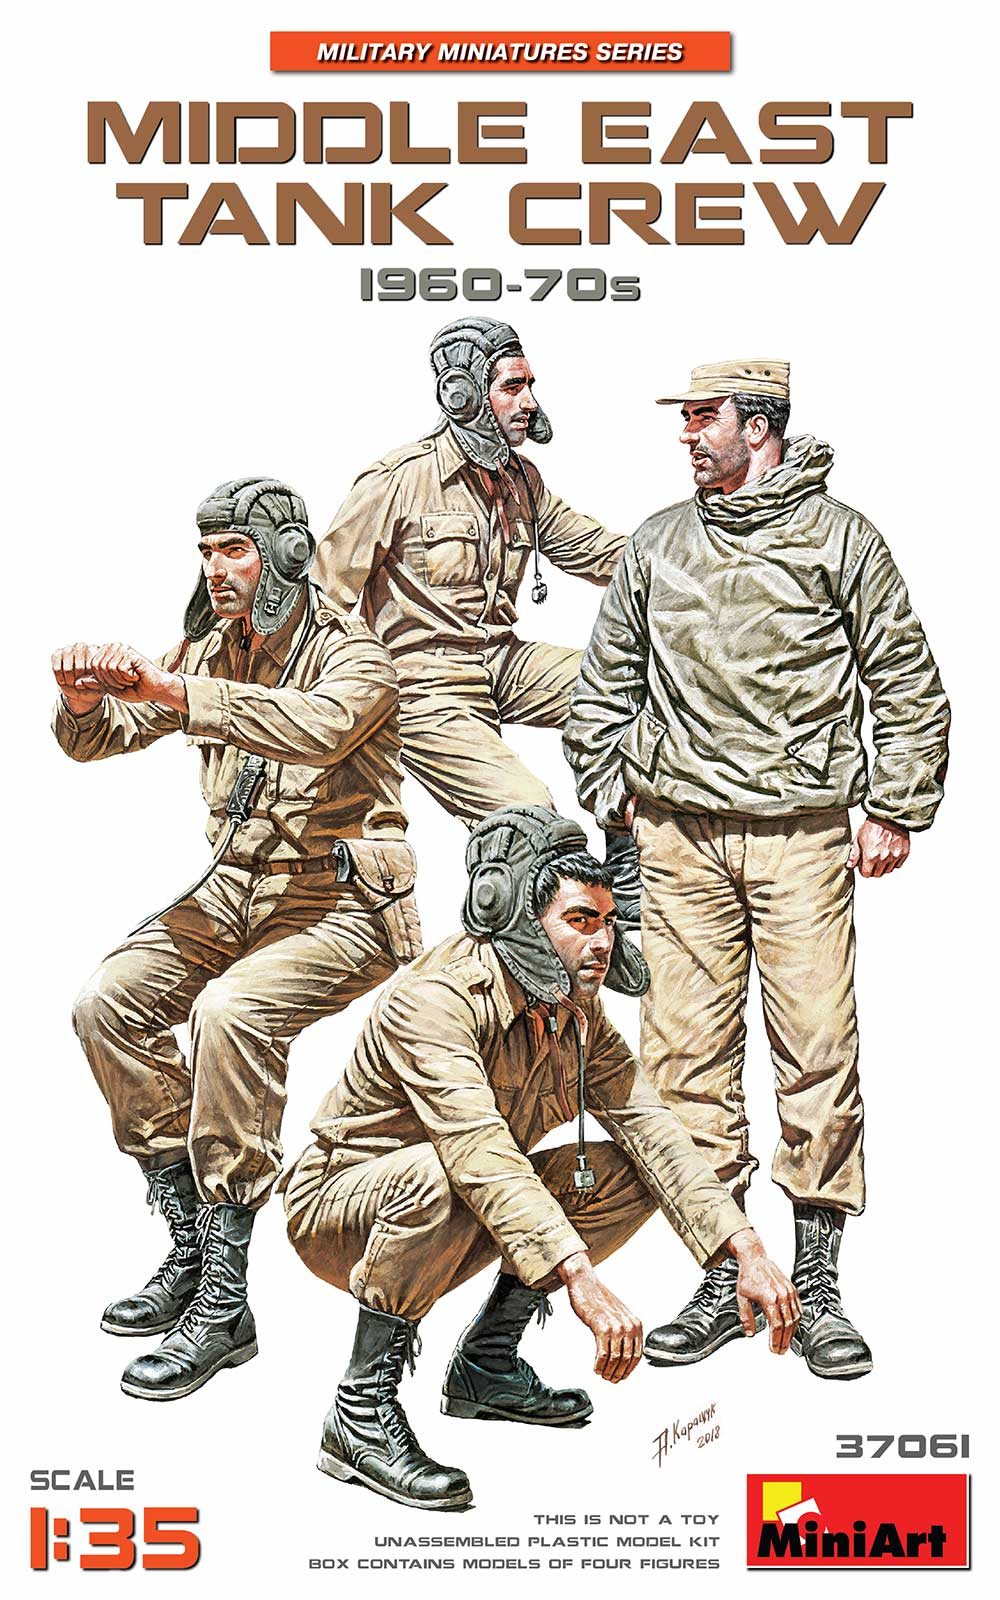 MiniArt Middle East Tank Crew 1960-70s